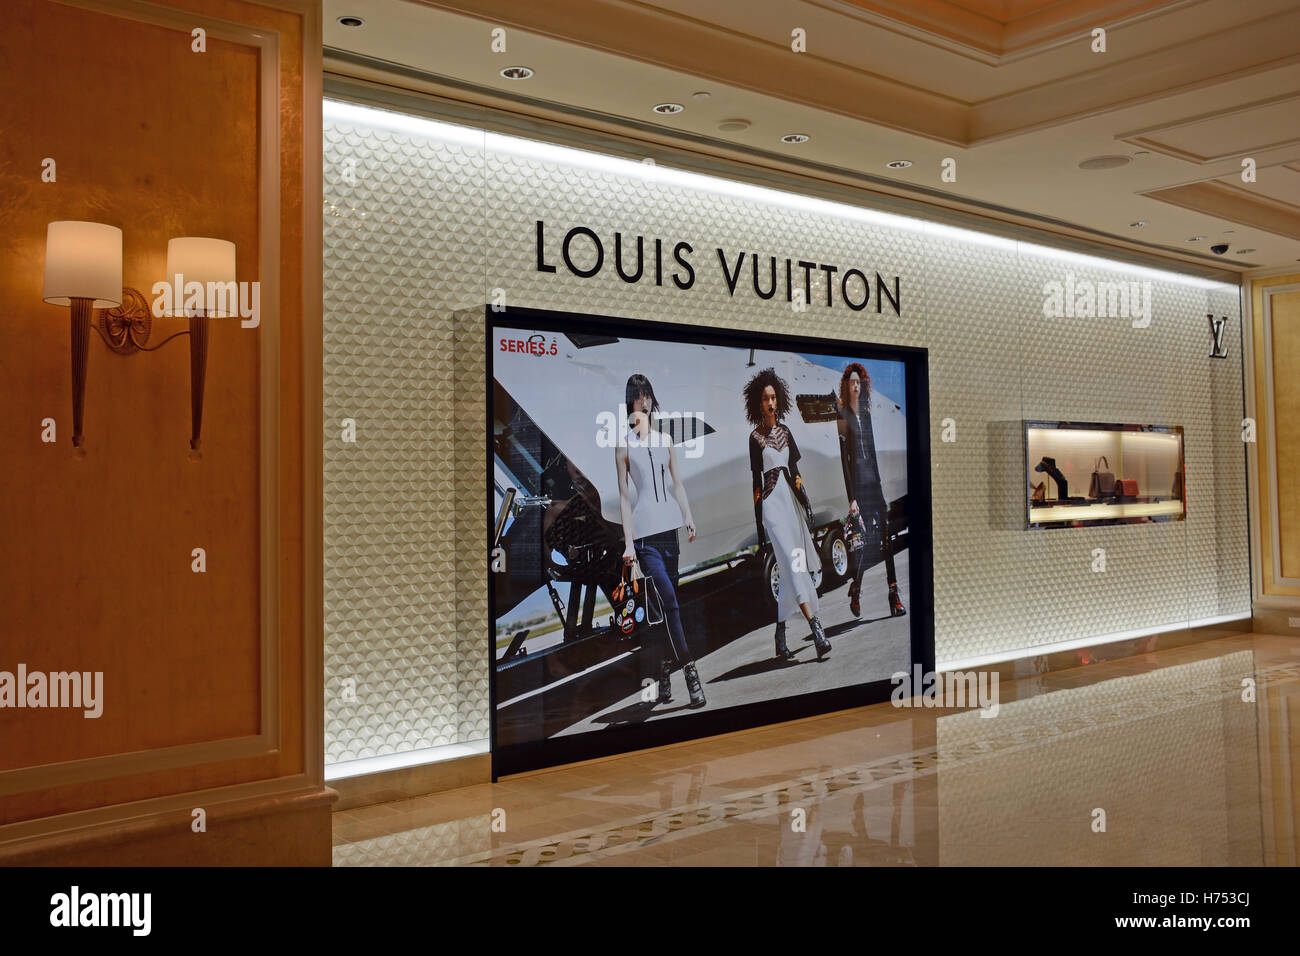 e962ad41663 Louis Vuitton boutique in Wynn hotel casino Macau China Stock Photo ...